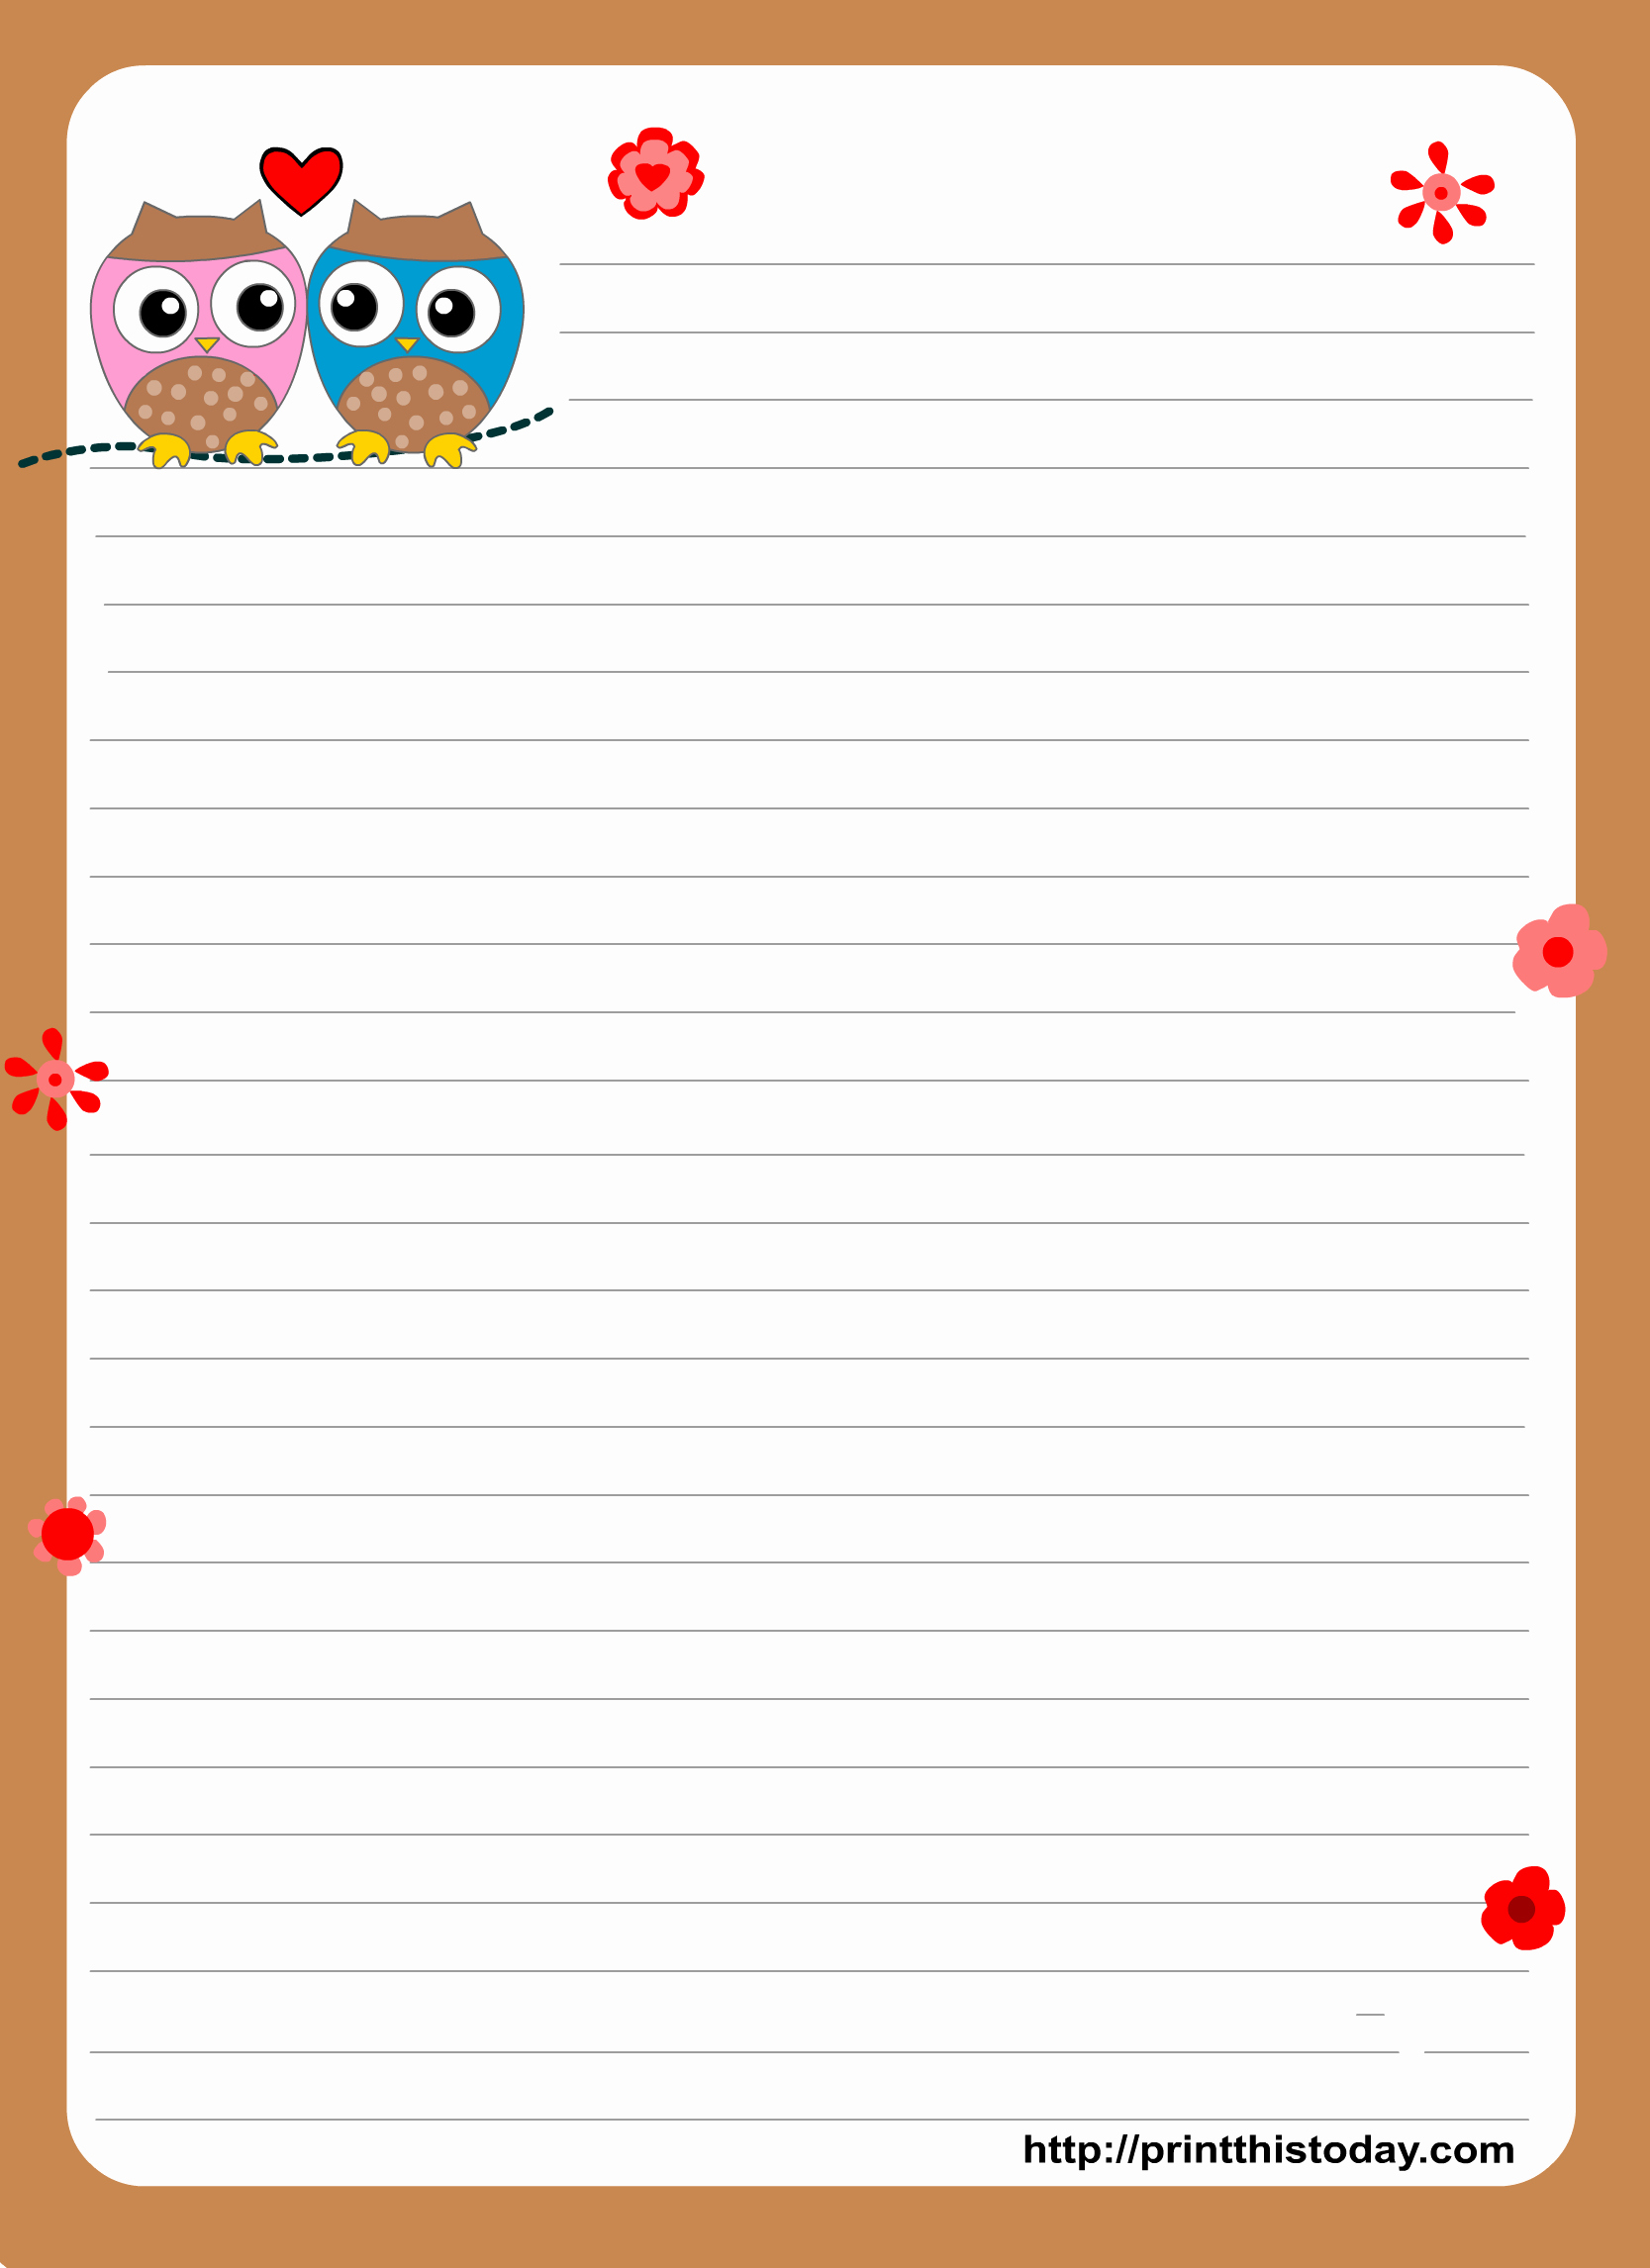 Printable Letter Writing Template Luxury 1000 Images About Free Printable Stationary On Pinterest